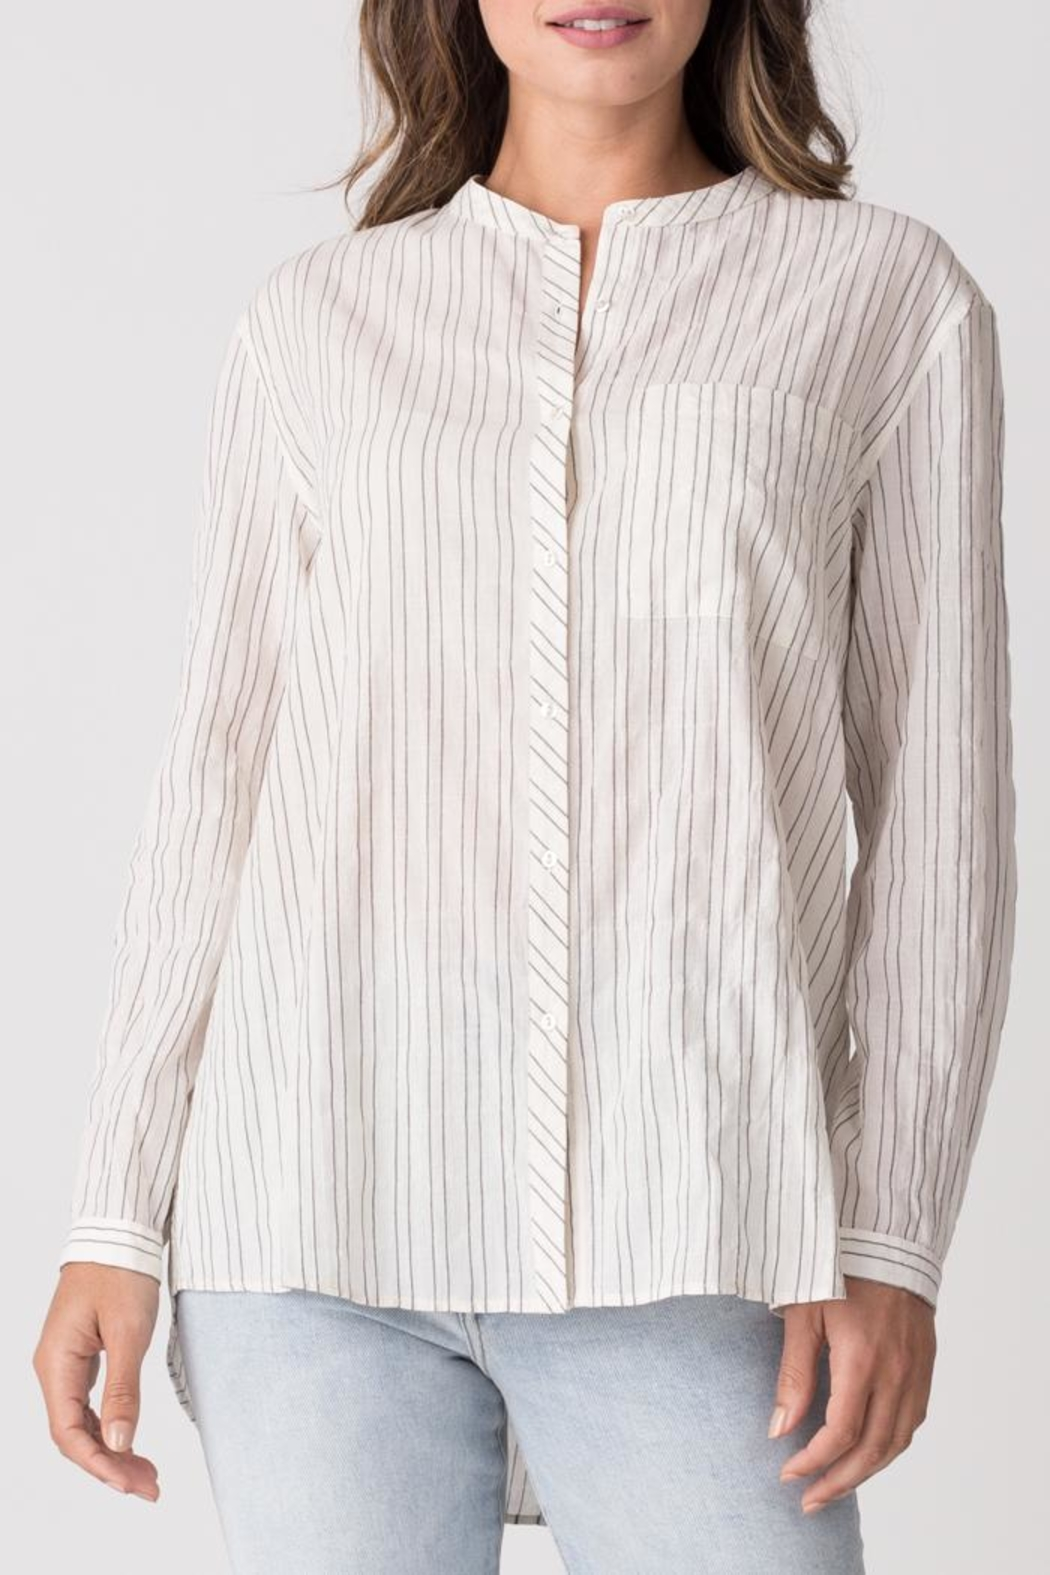 Margaret O'Leary Relaxed Striped Shirt - Front Cropped Image